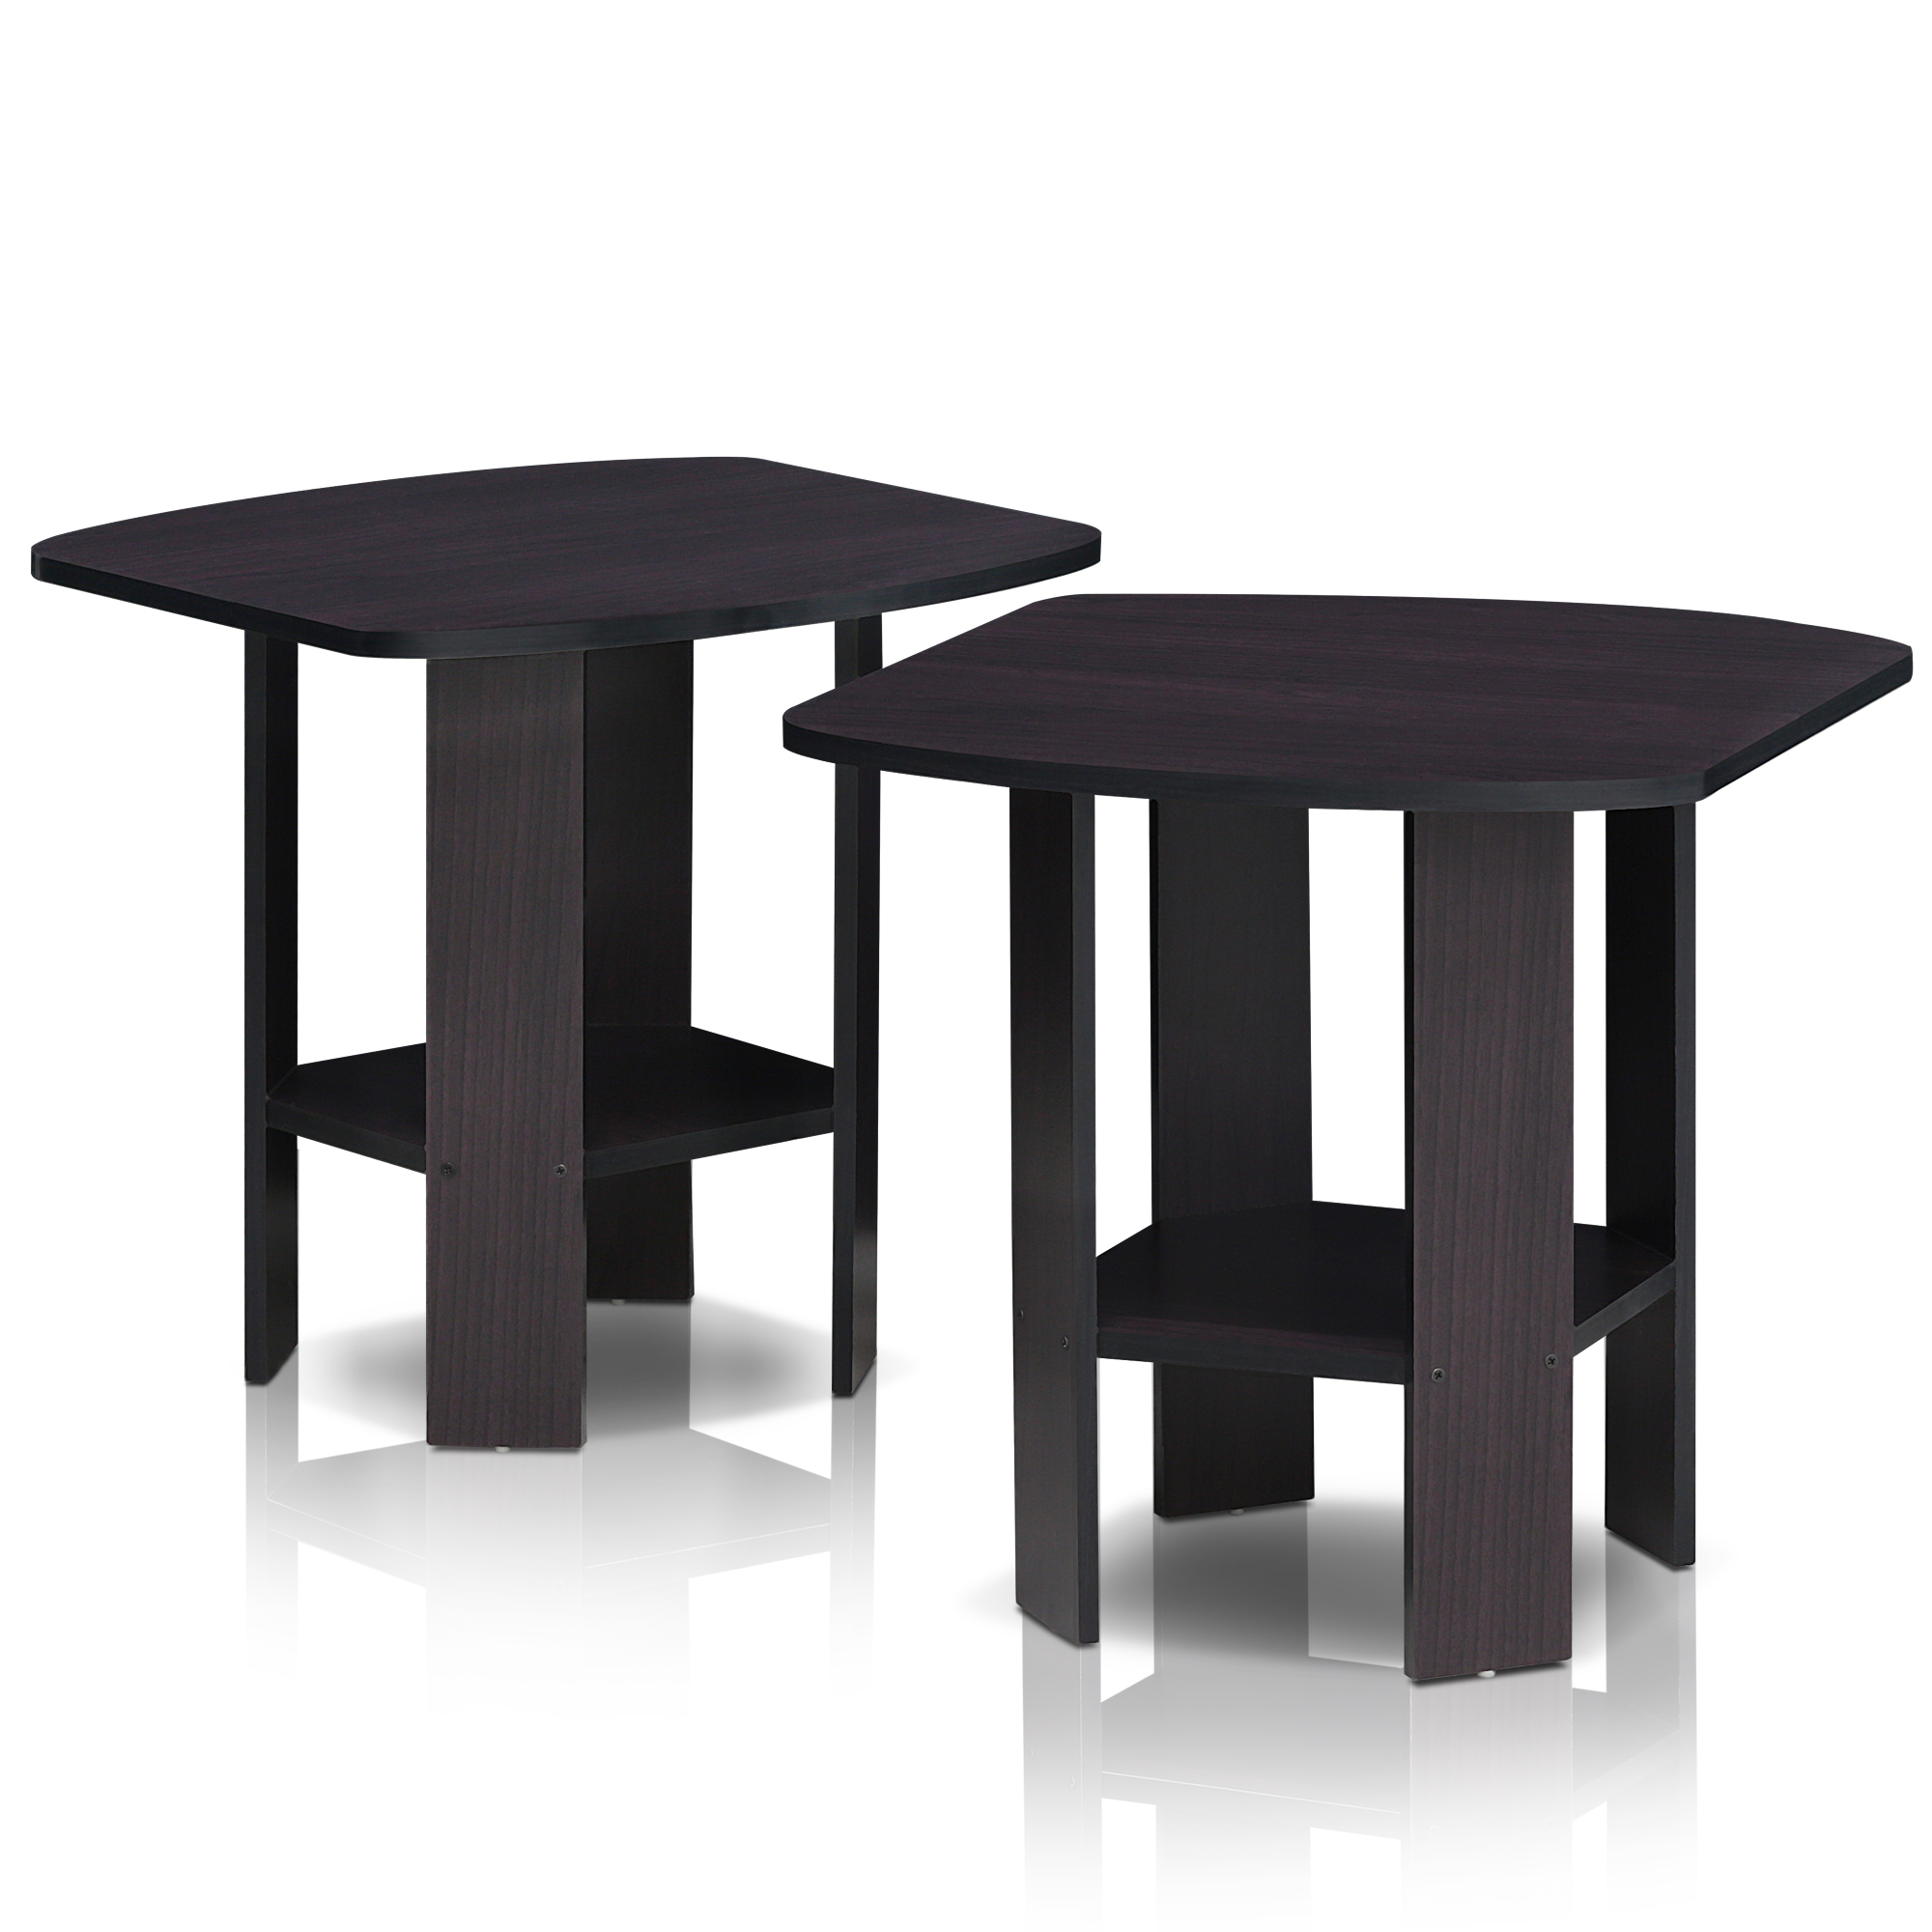 Furinno Simple Design End Table Set of Two, Espresso by Furinno